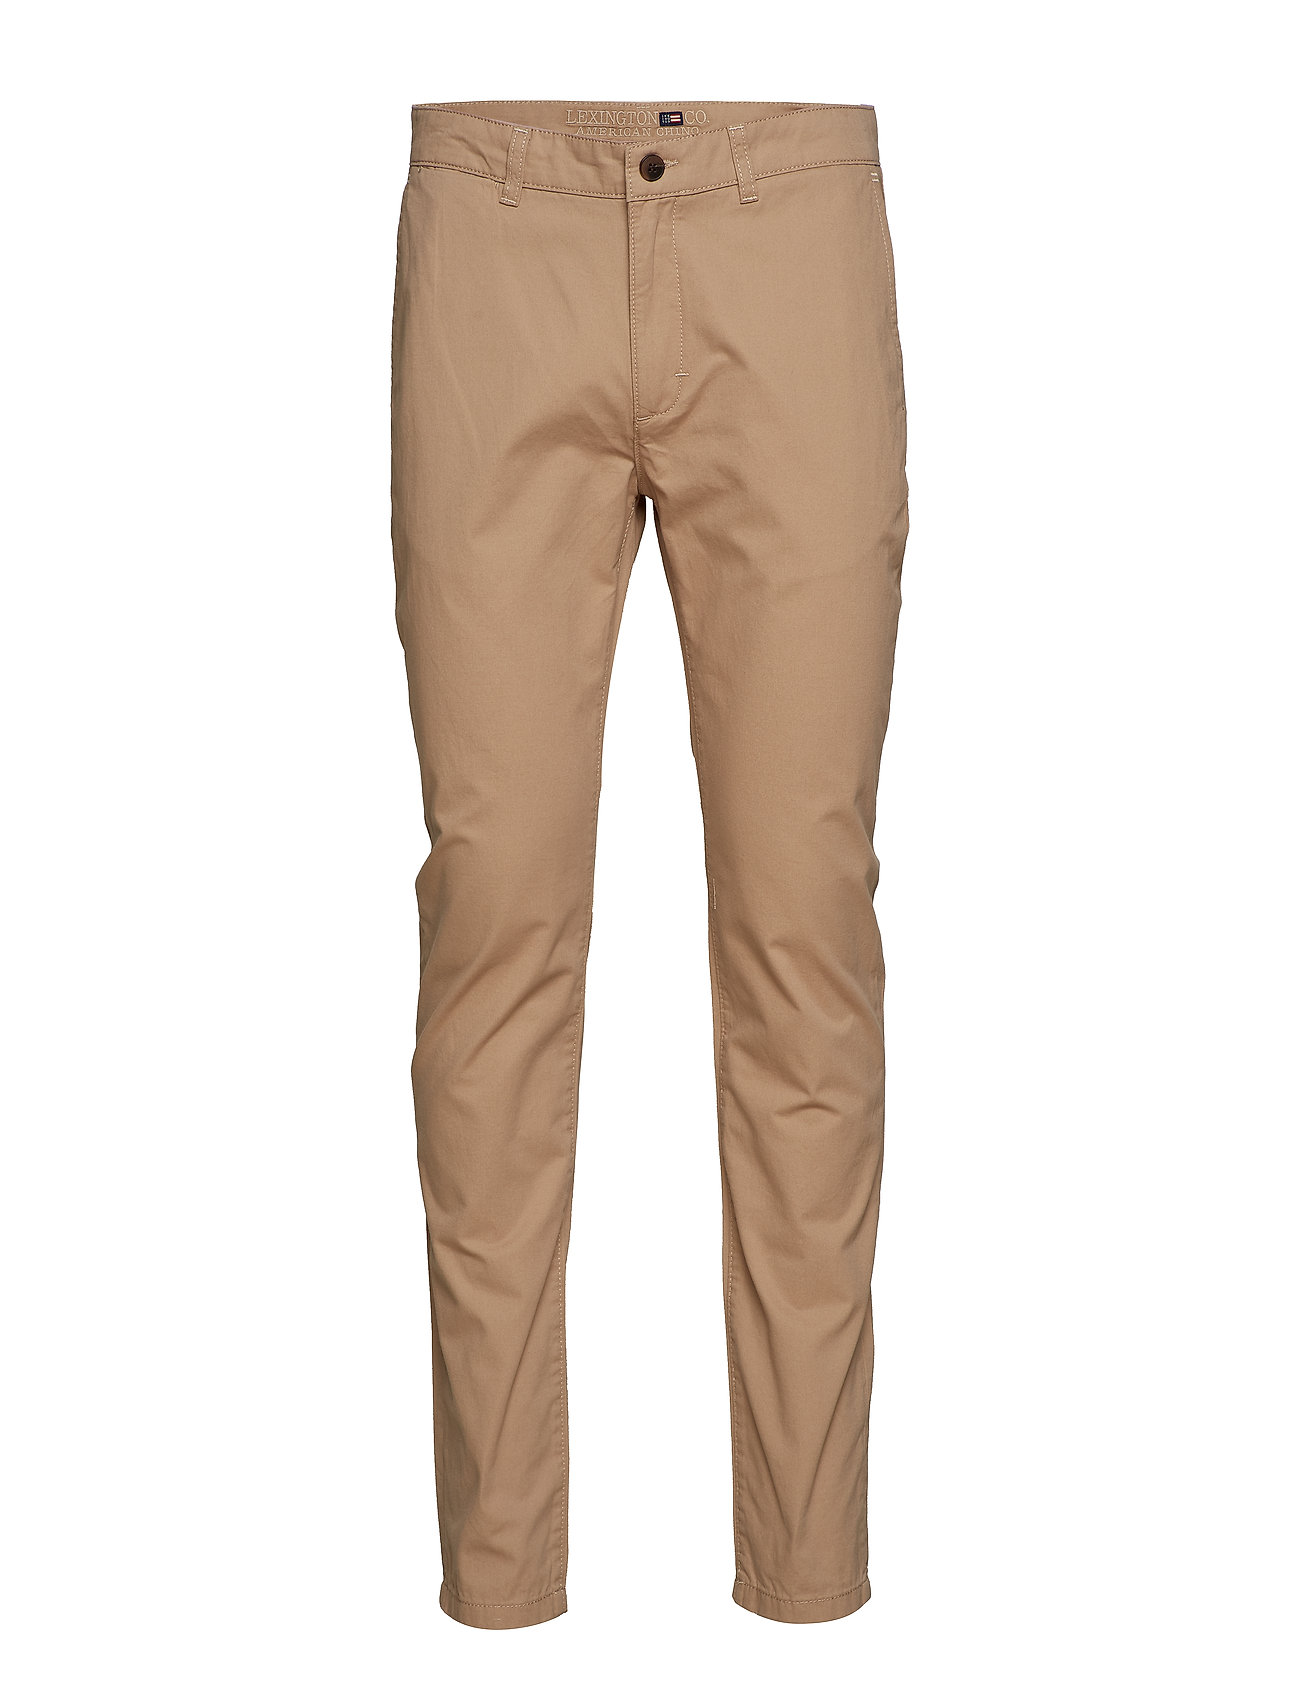 Lexington Clothing Steven Chinos - SILVER MINK